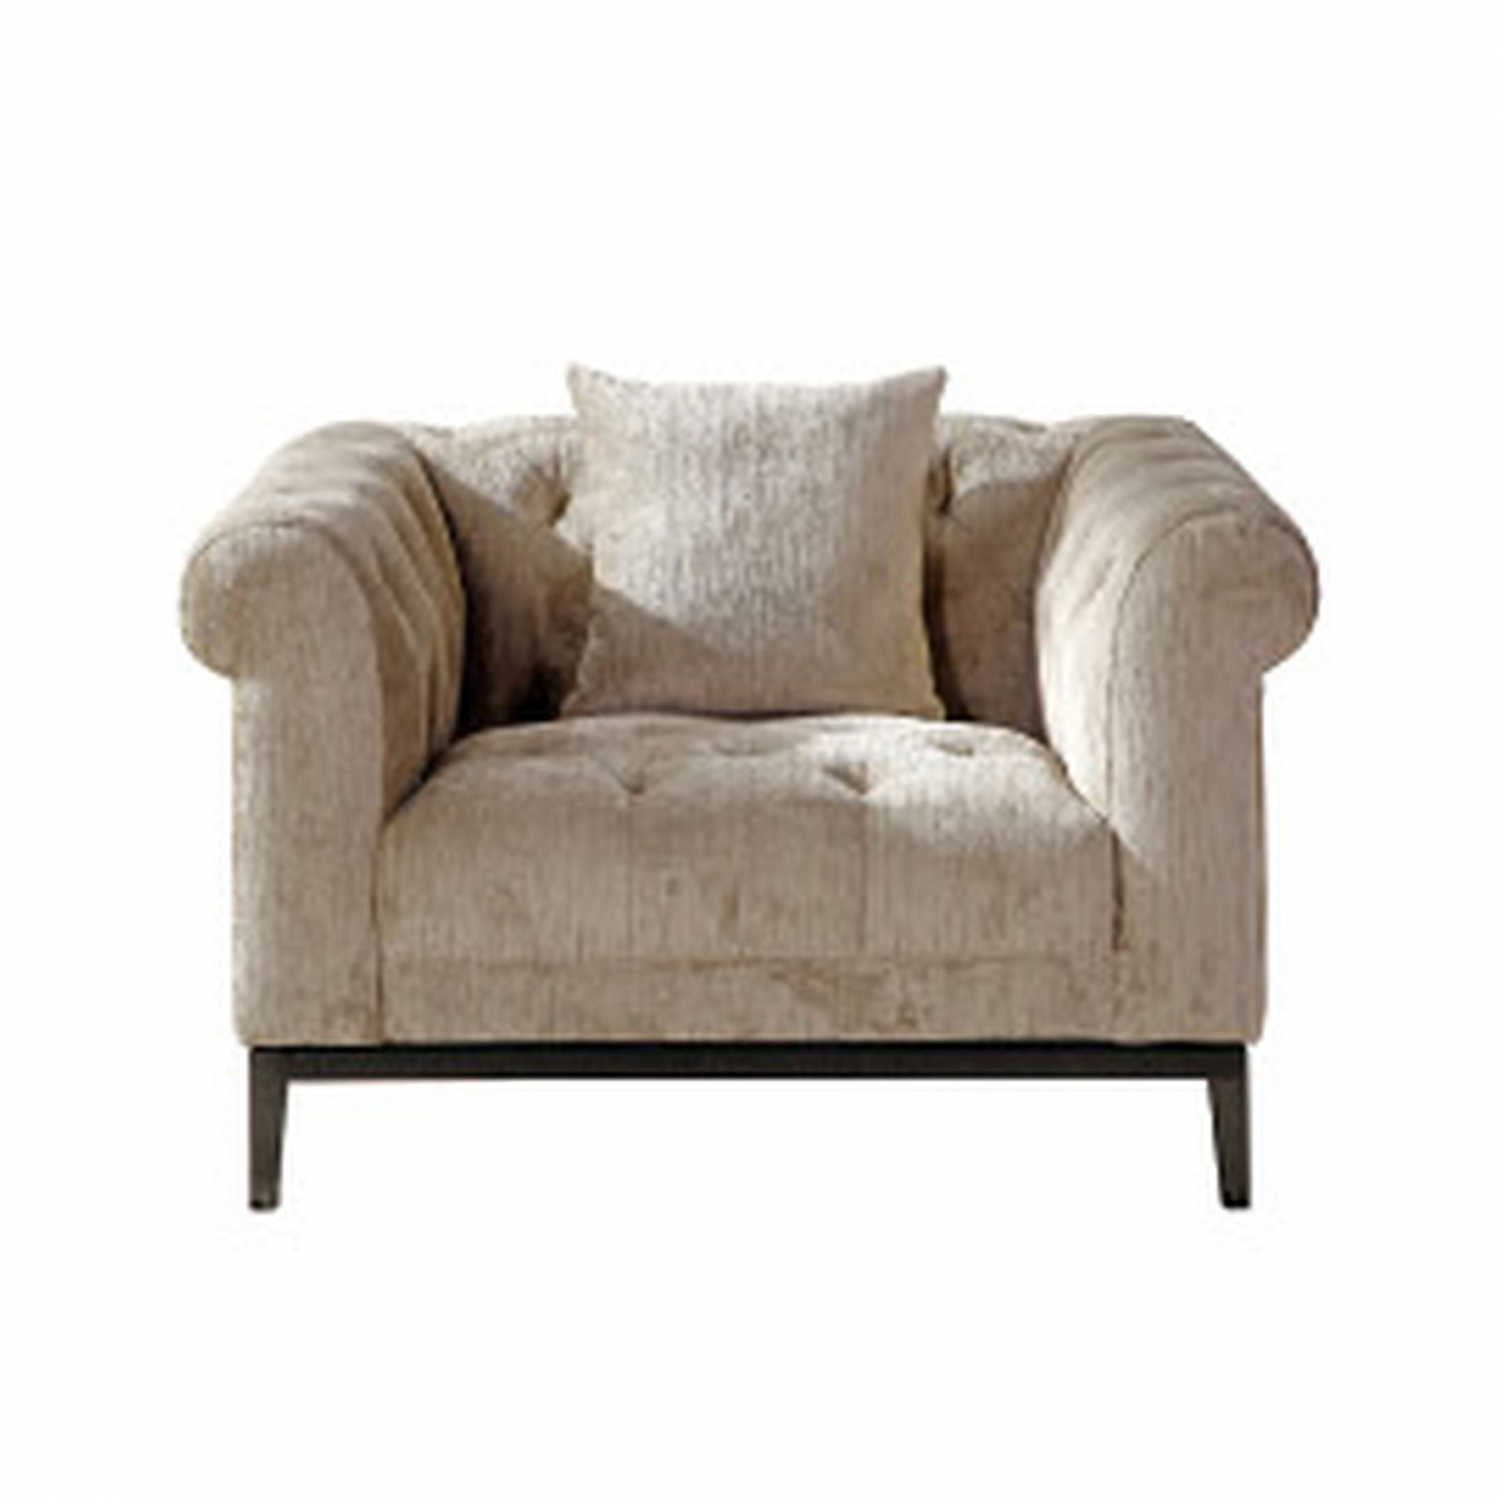 Details About Rasmus Contemporary Art Deco Furniture Luxury Tufted One Seater Sofa Chair